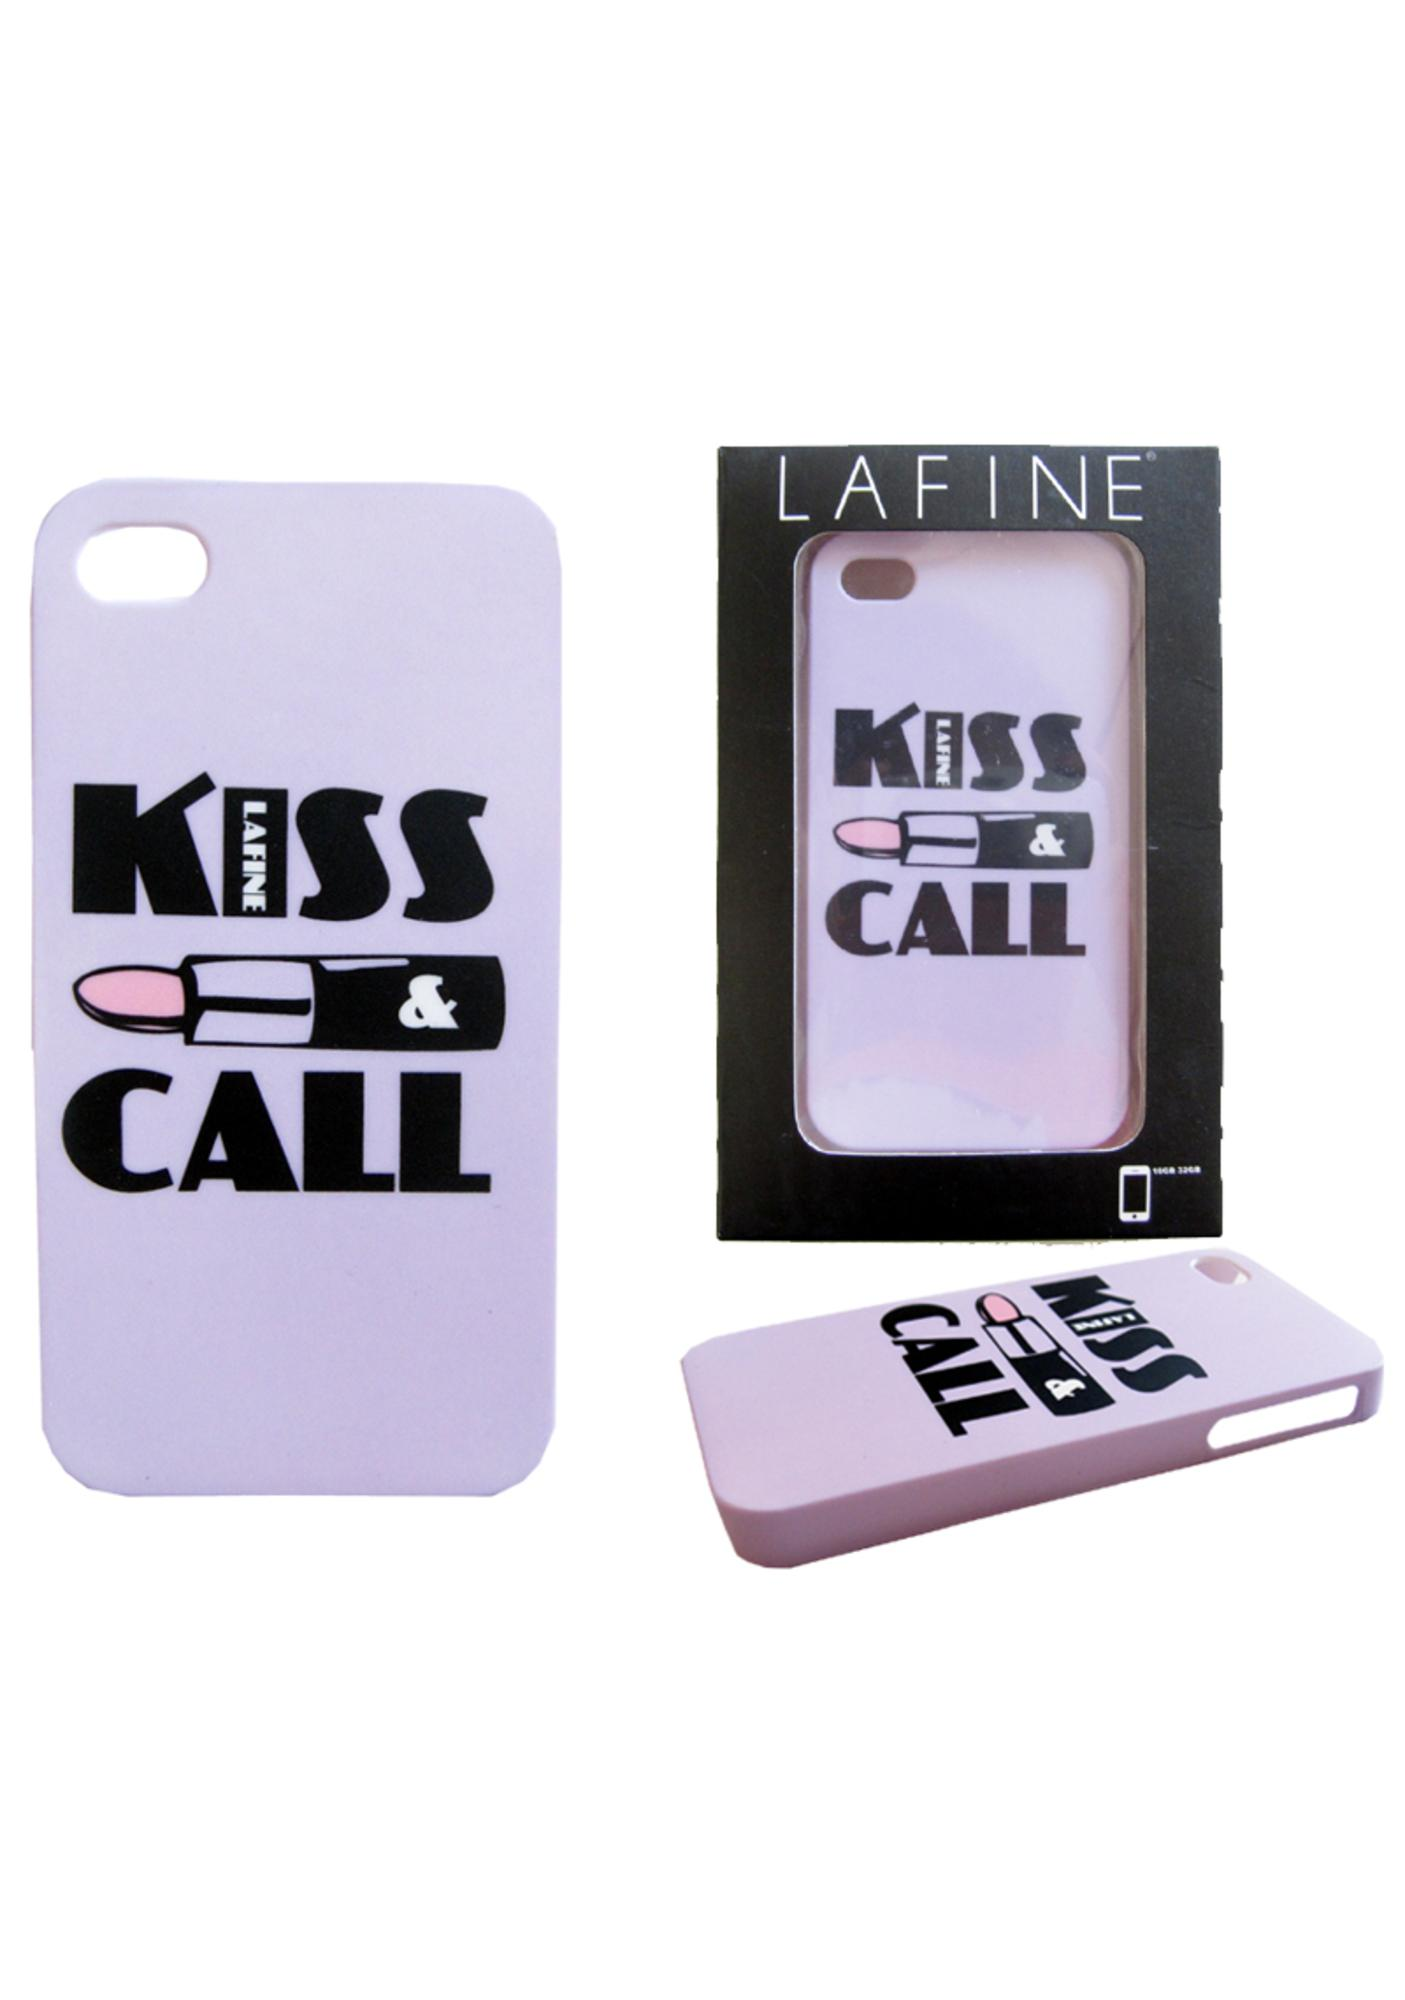 Lafine Kiss and Call iPhone Case